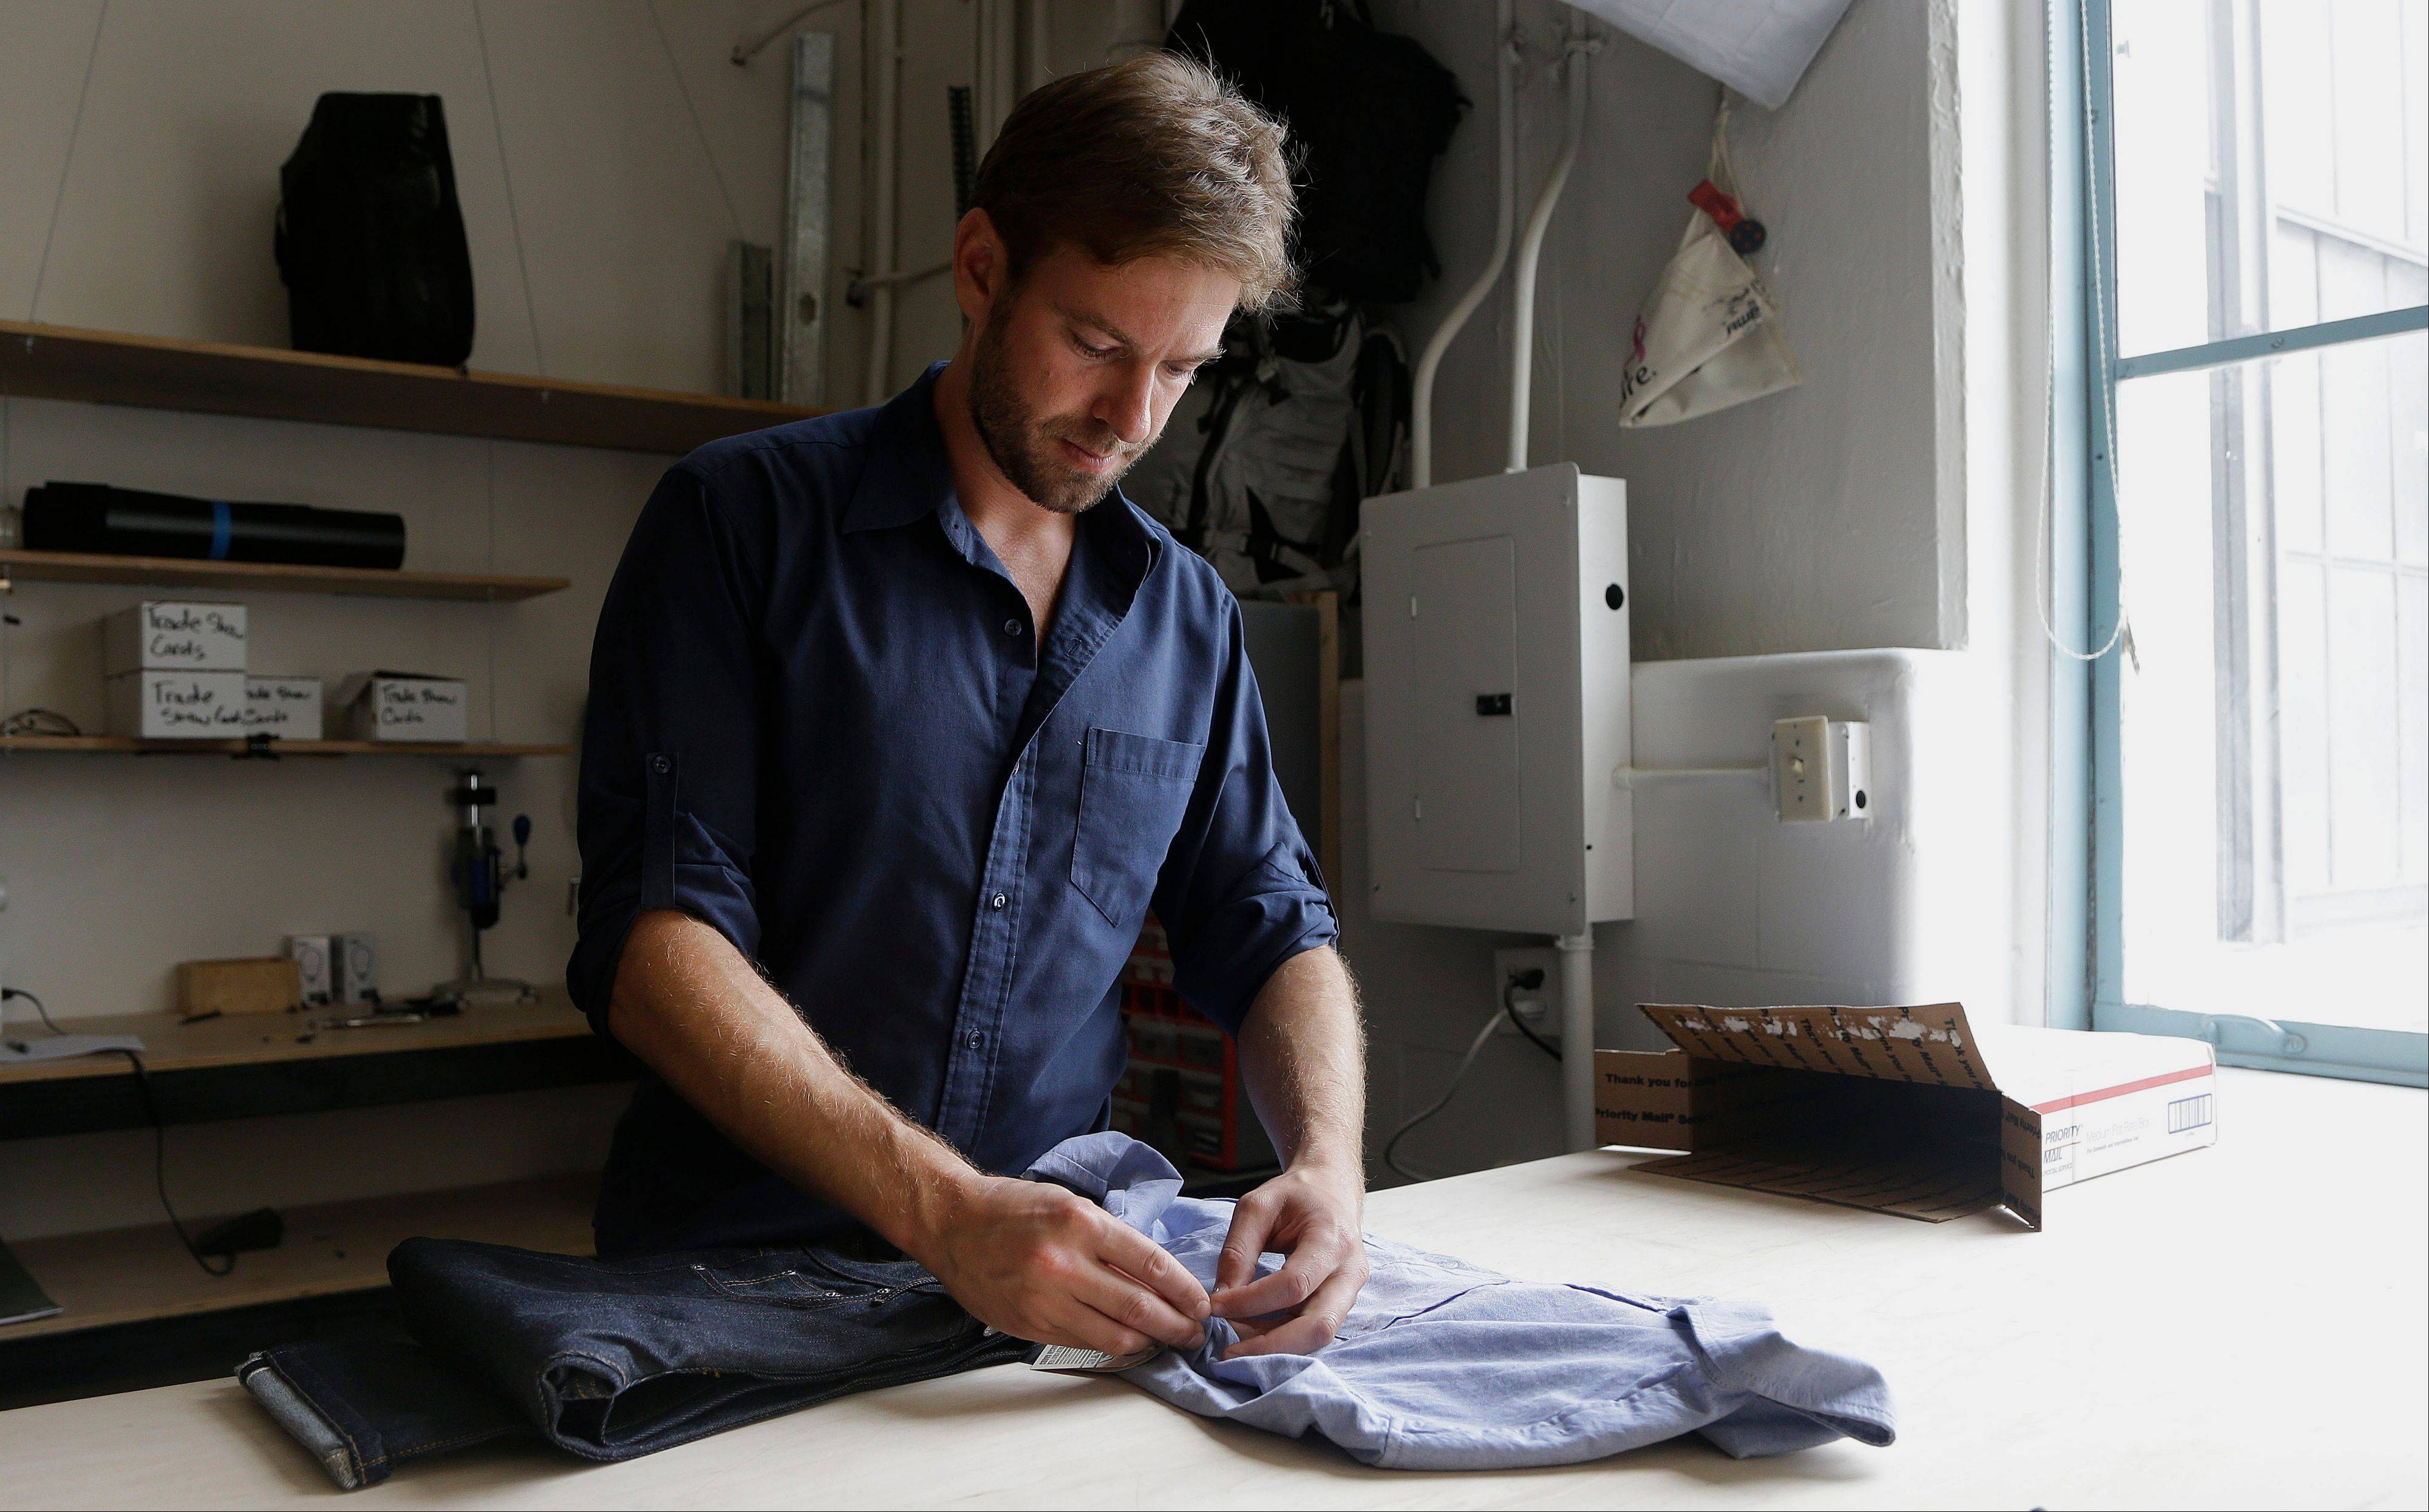 Peak Design founder Peter Dering looks through a package of clothing he had received from Buck Mason at his office in San Francisco. The Silicon Valley has a fashion problem dating back to its founders, who launched high tech companies promising to be different: no more top down management, no more cubicles, no more business suits.